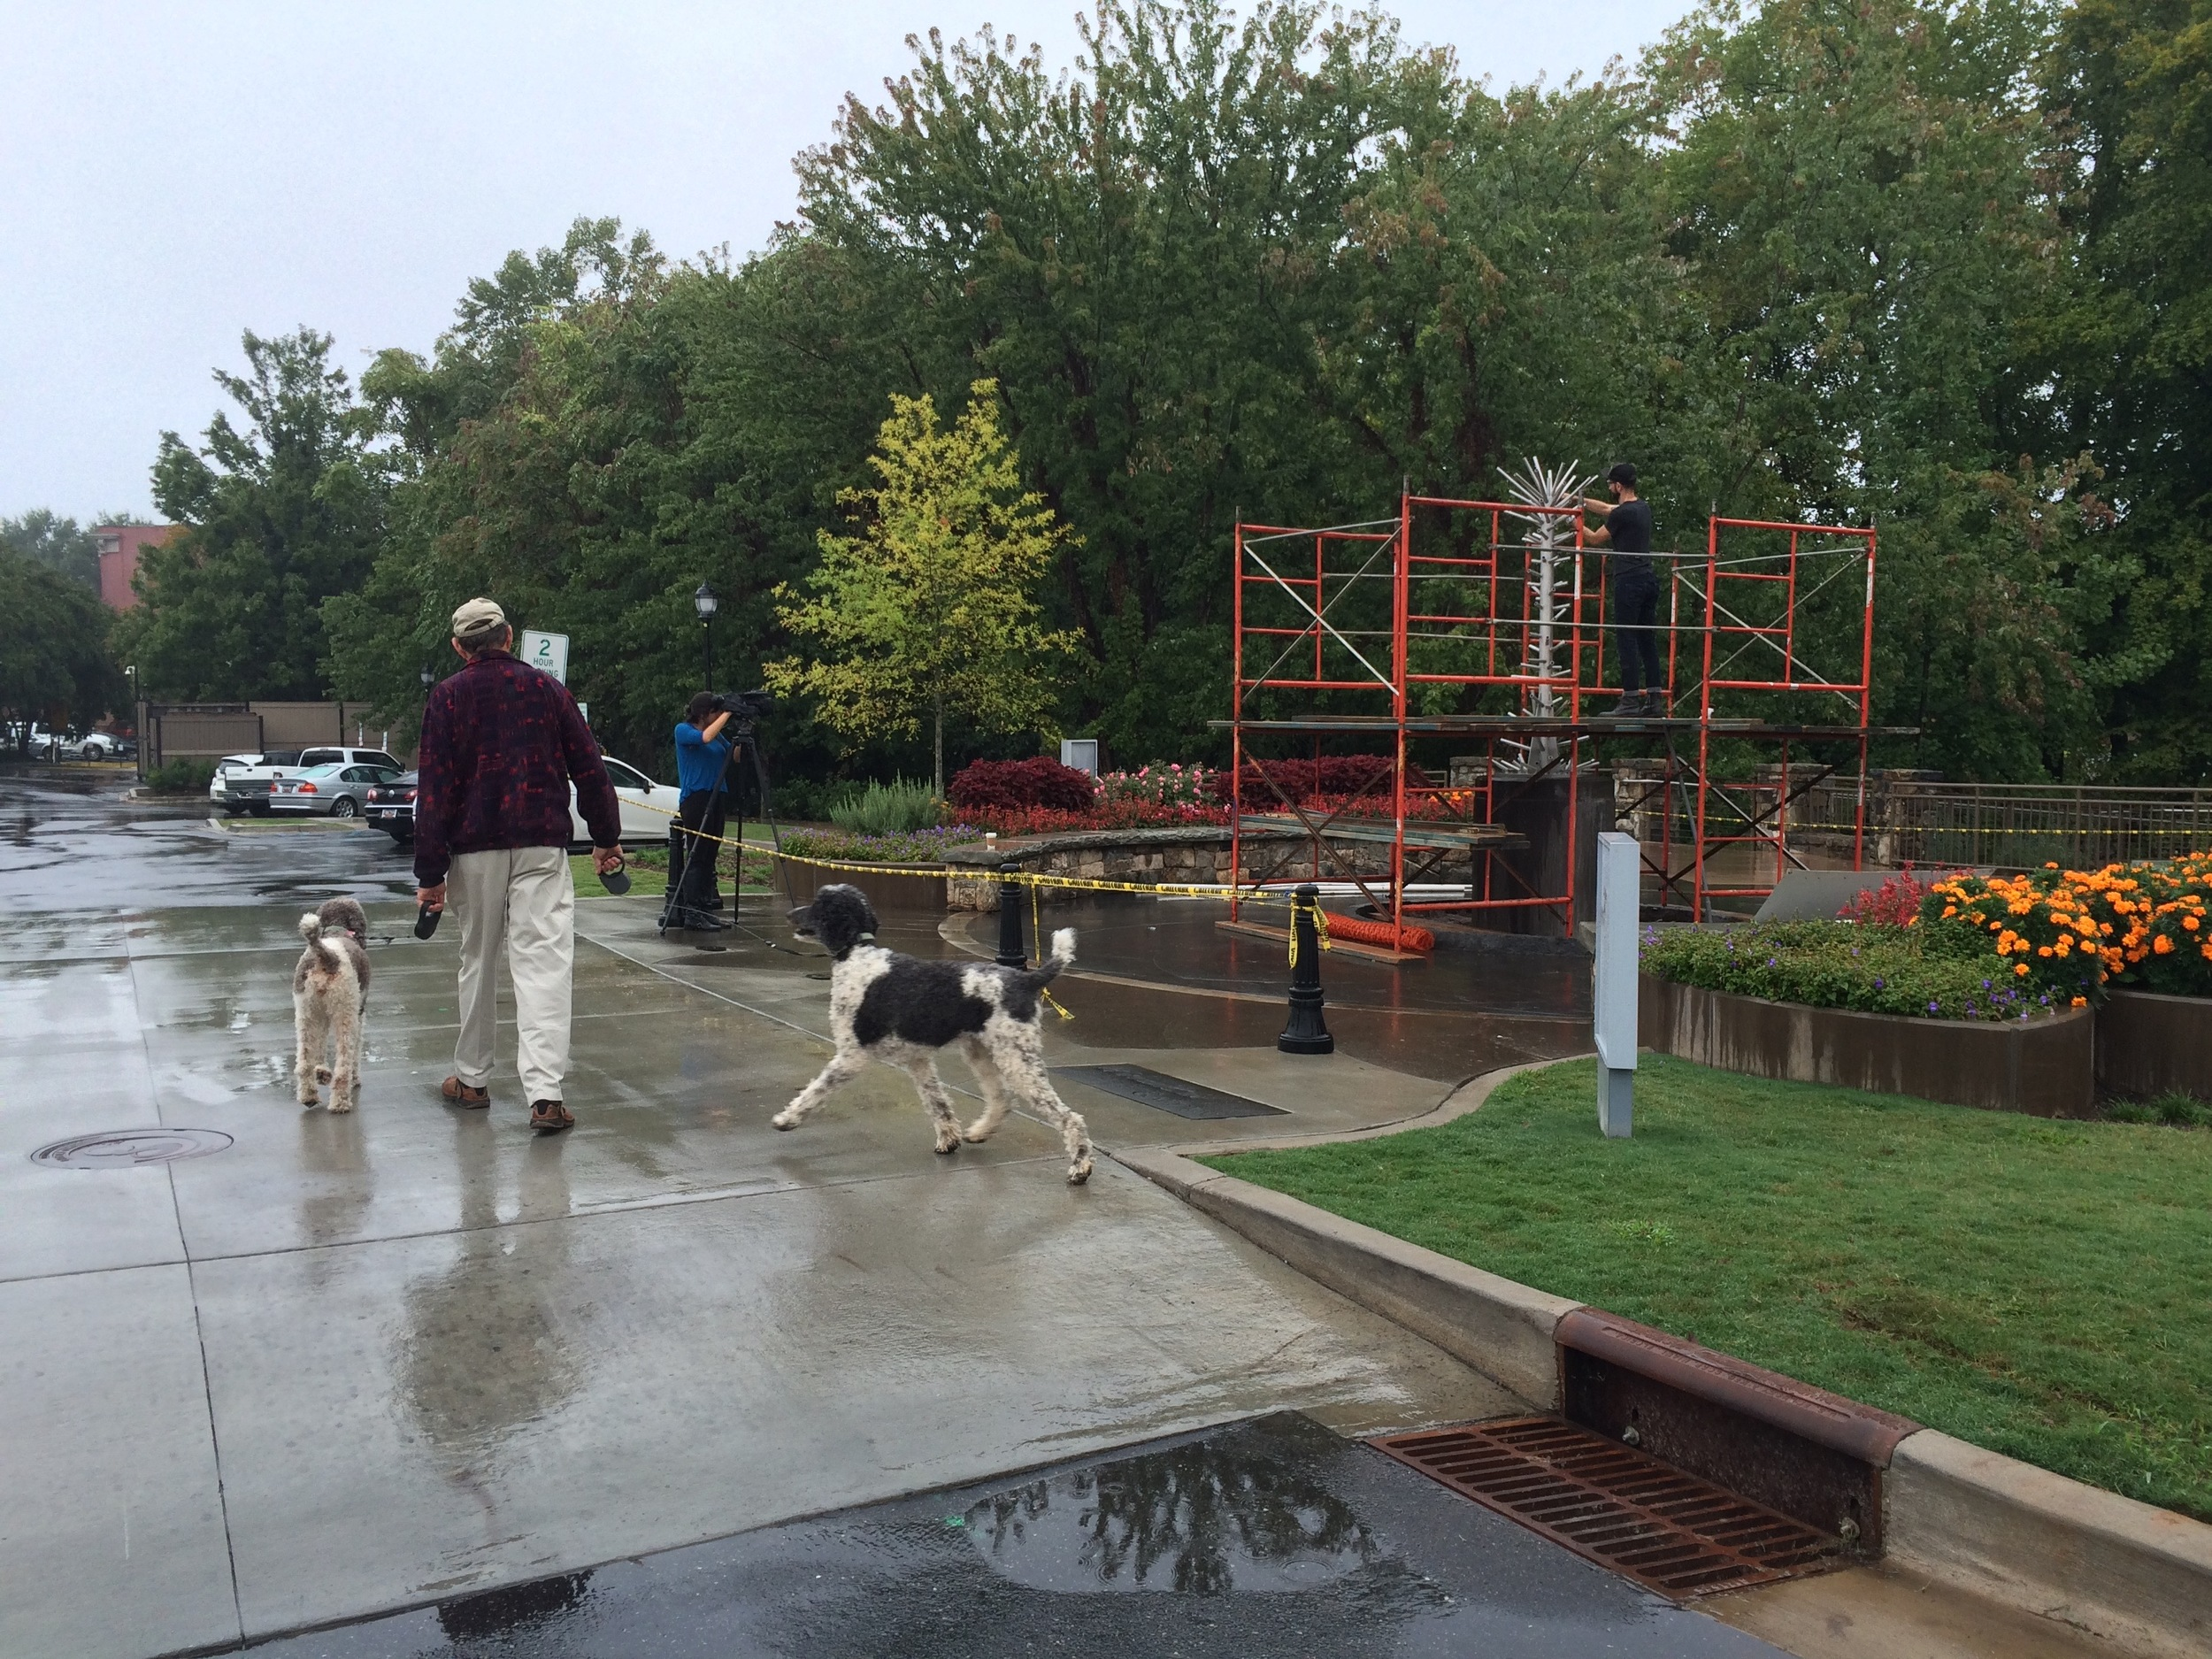 Roger, Rosie and Jaz as we begin our morning walk in the rain, in Falls Park.